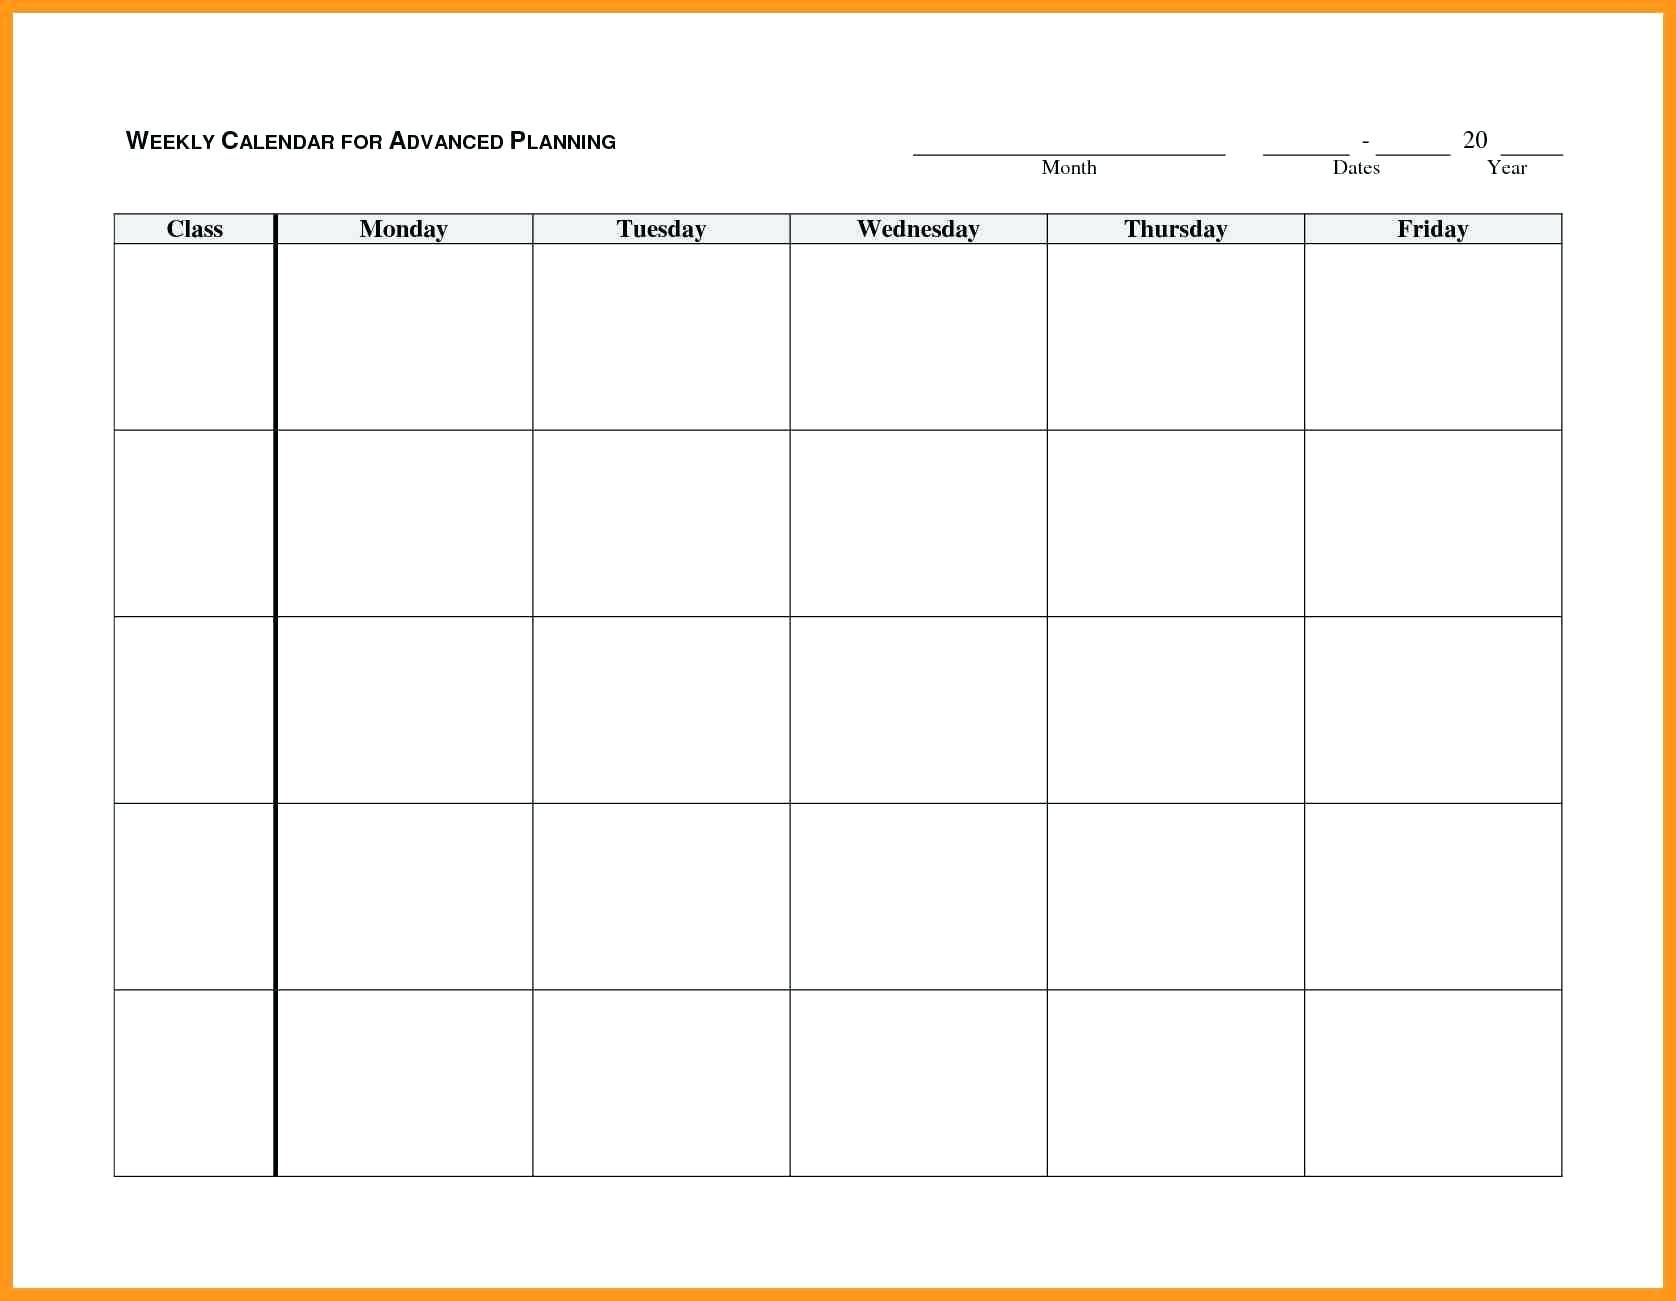 Blank Weekly Ndar Monday Through Friday Template Word Free Printable inside Monday Through Friday Blank Schedule Print Out